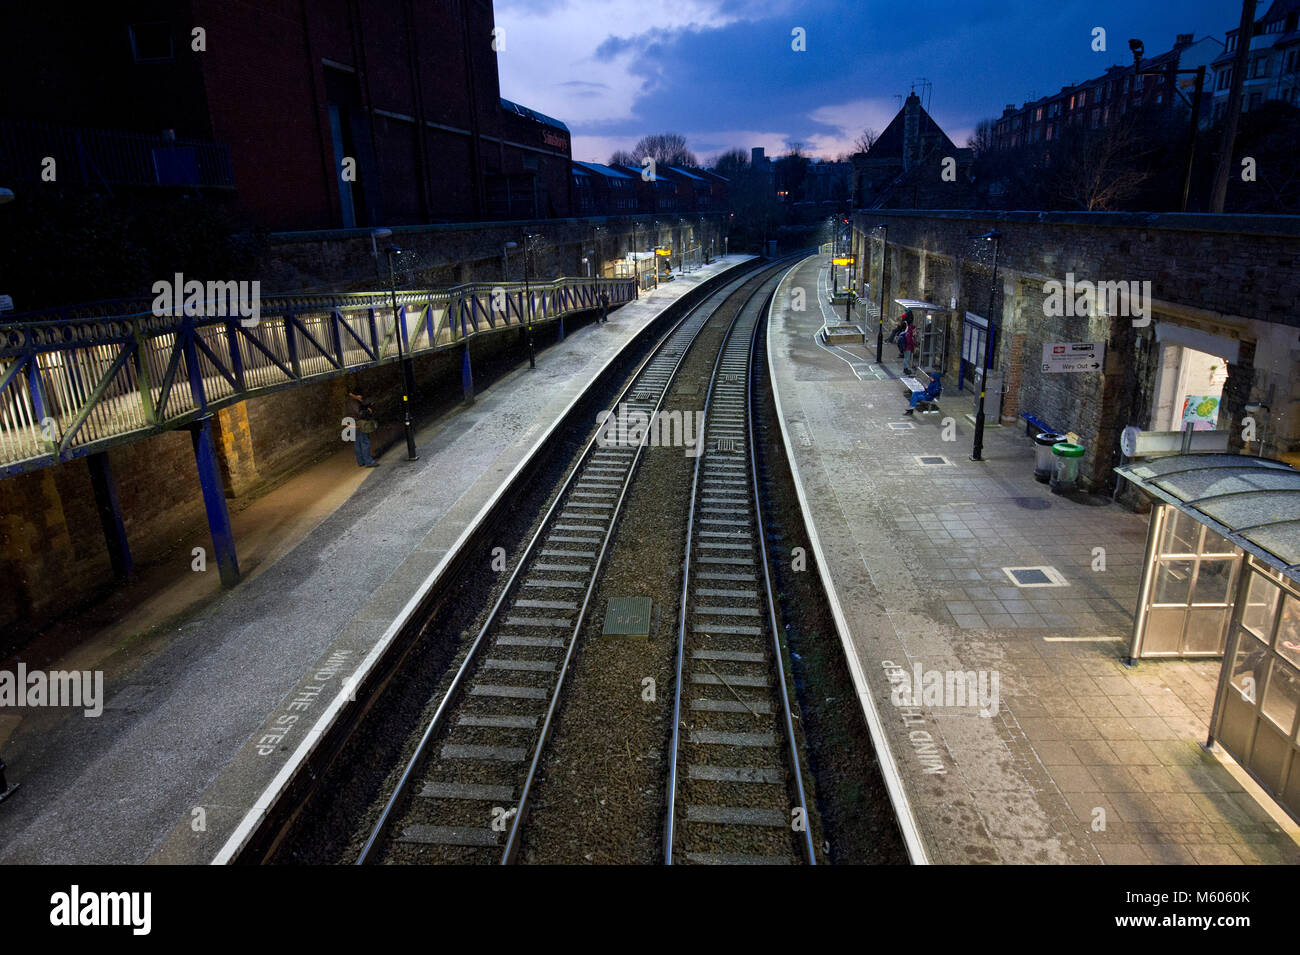 Clifton Down railway station, Bristol, showing commuters in rush hour Stock Photo